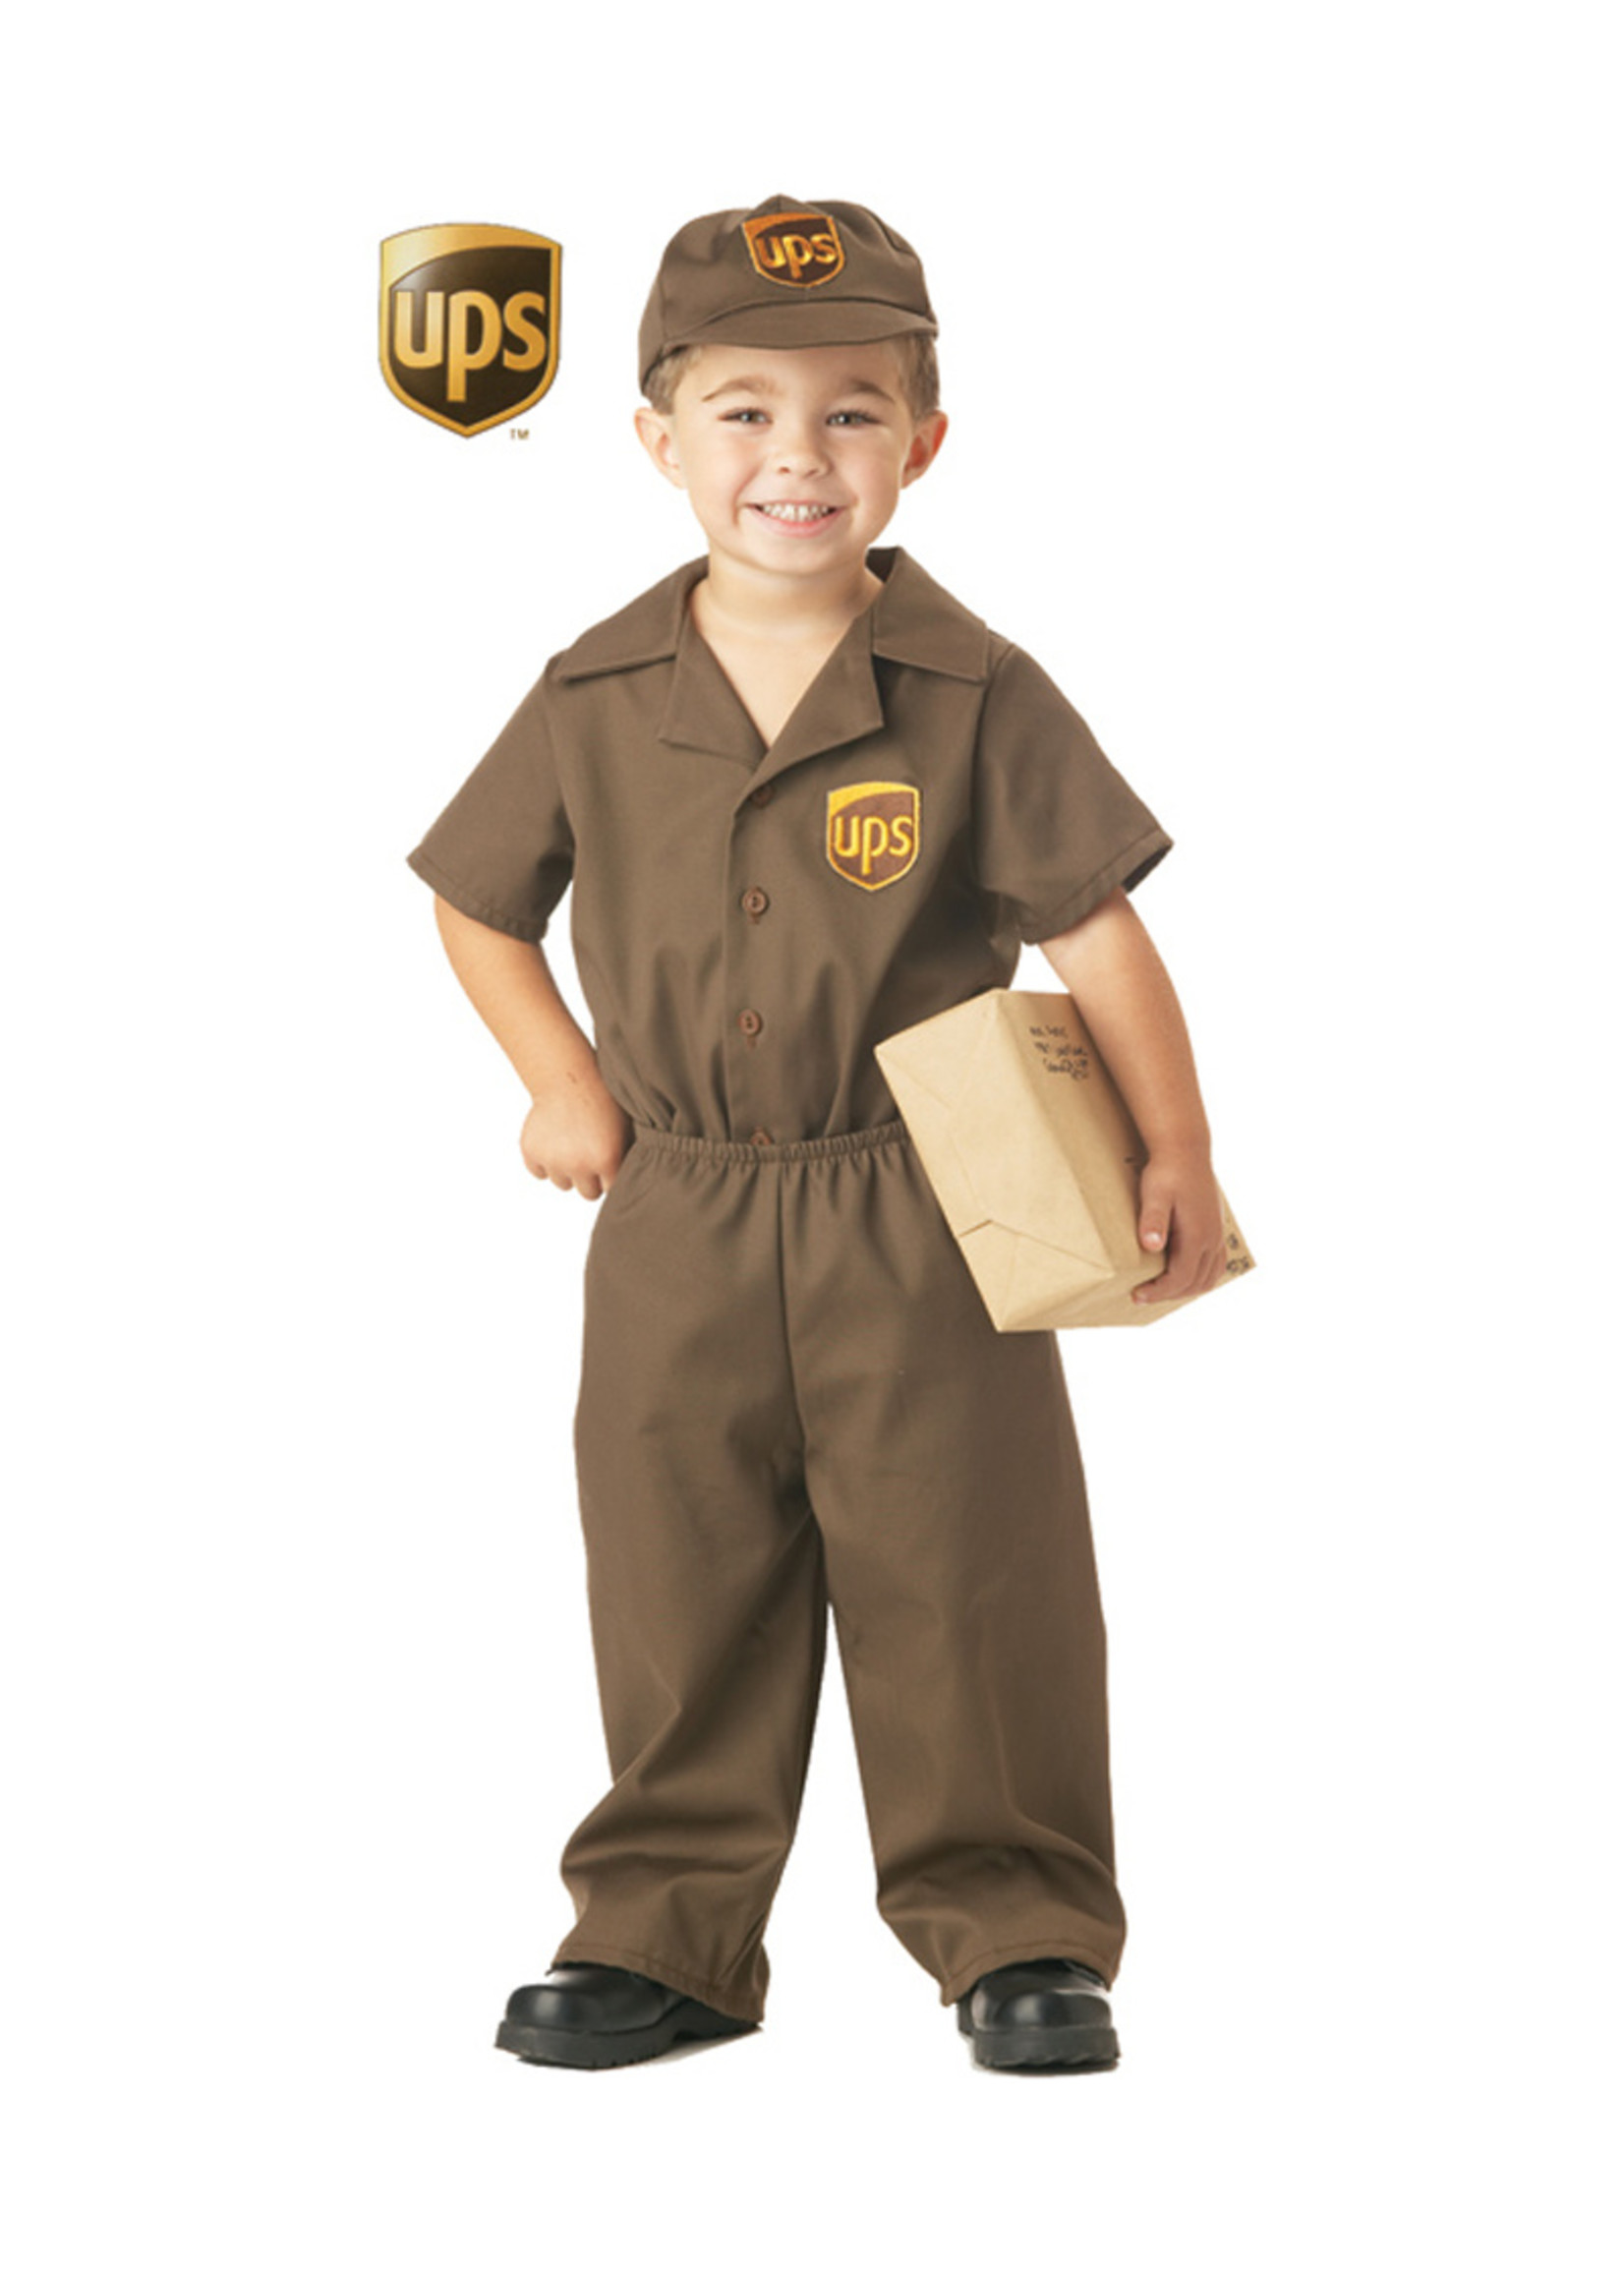 UPS Driver Costume - Toddler